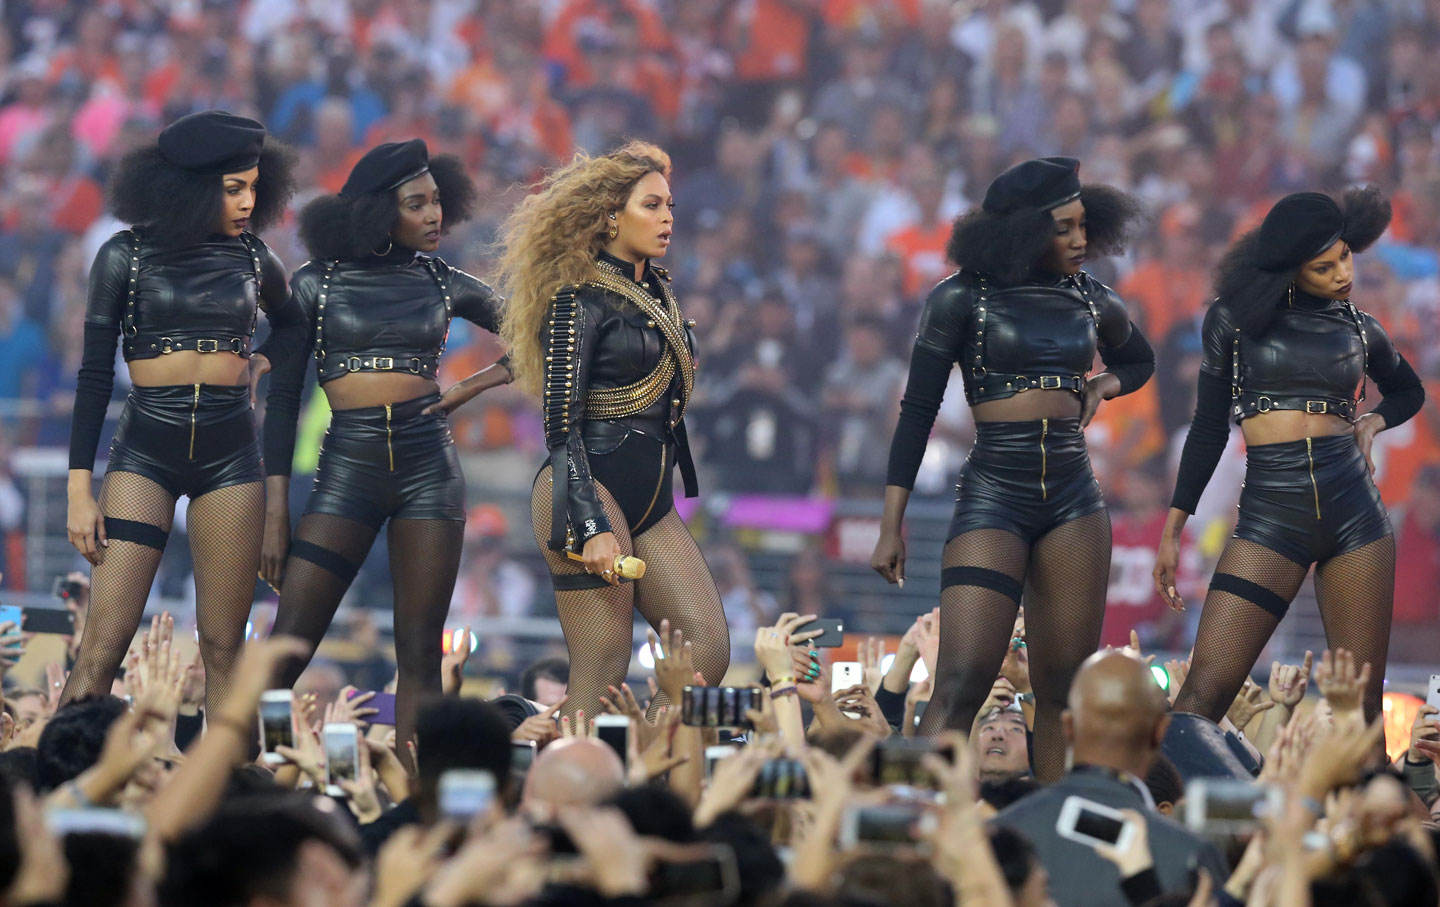 Beyonce_Black_Panthers_rtr_img.jpg